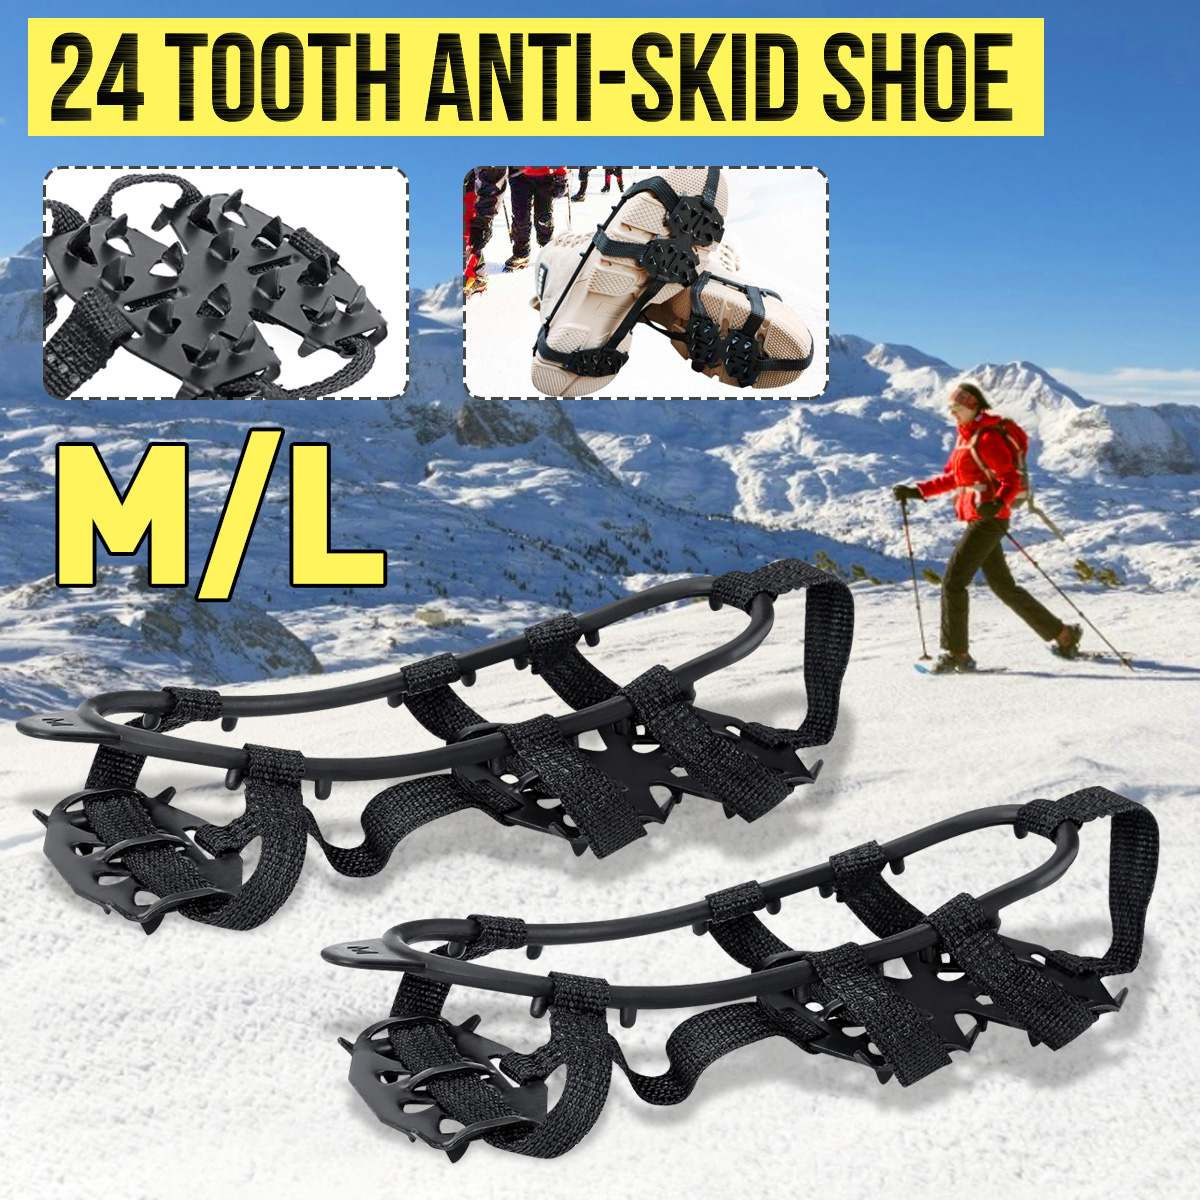 24 Teeth M/L Anti-Skid Spikes Cleats Ice Snow Crampons Gripper Shoe Snow Chain Anti Slip Shoe Covers Winter Climbing Skiing